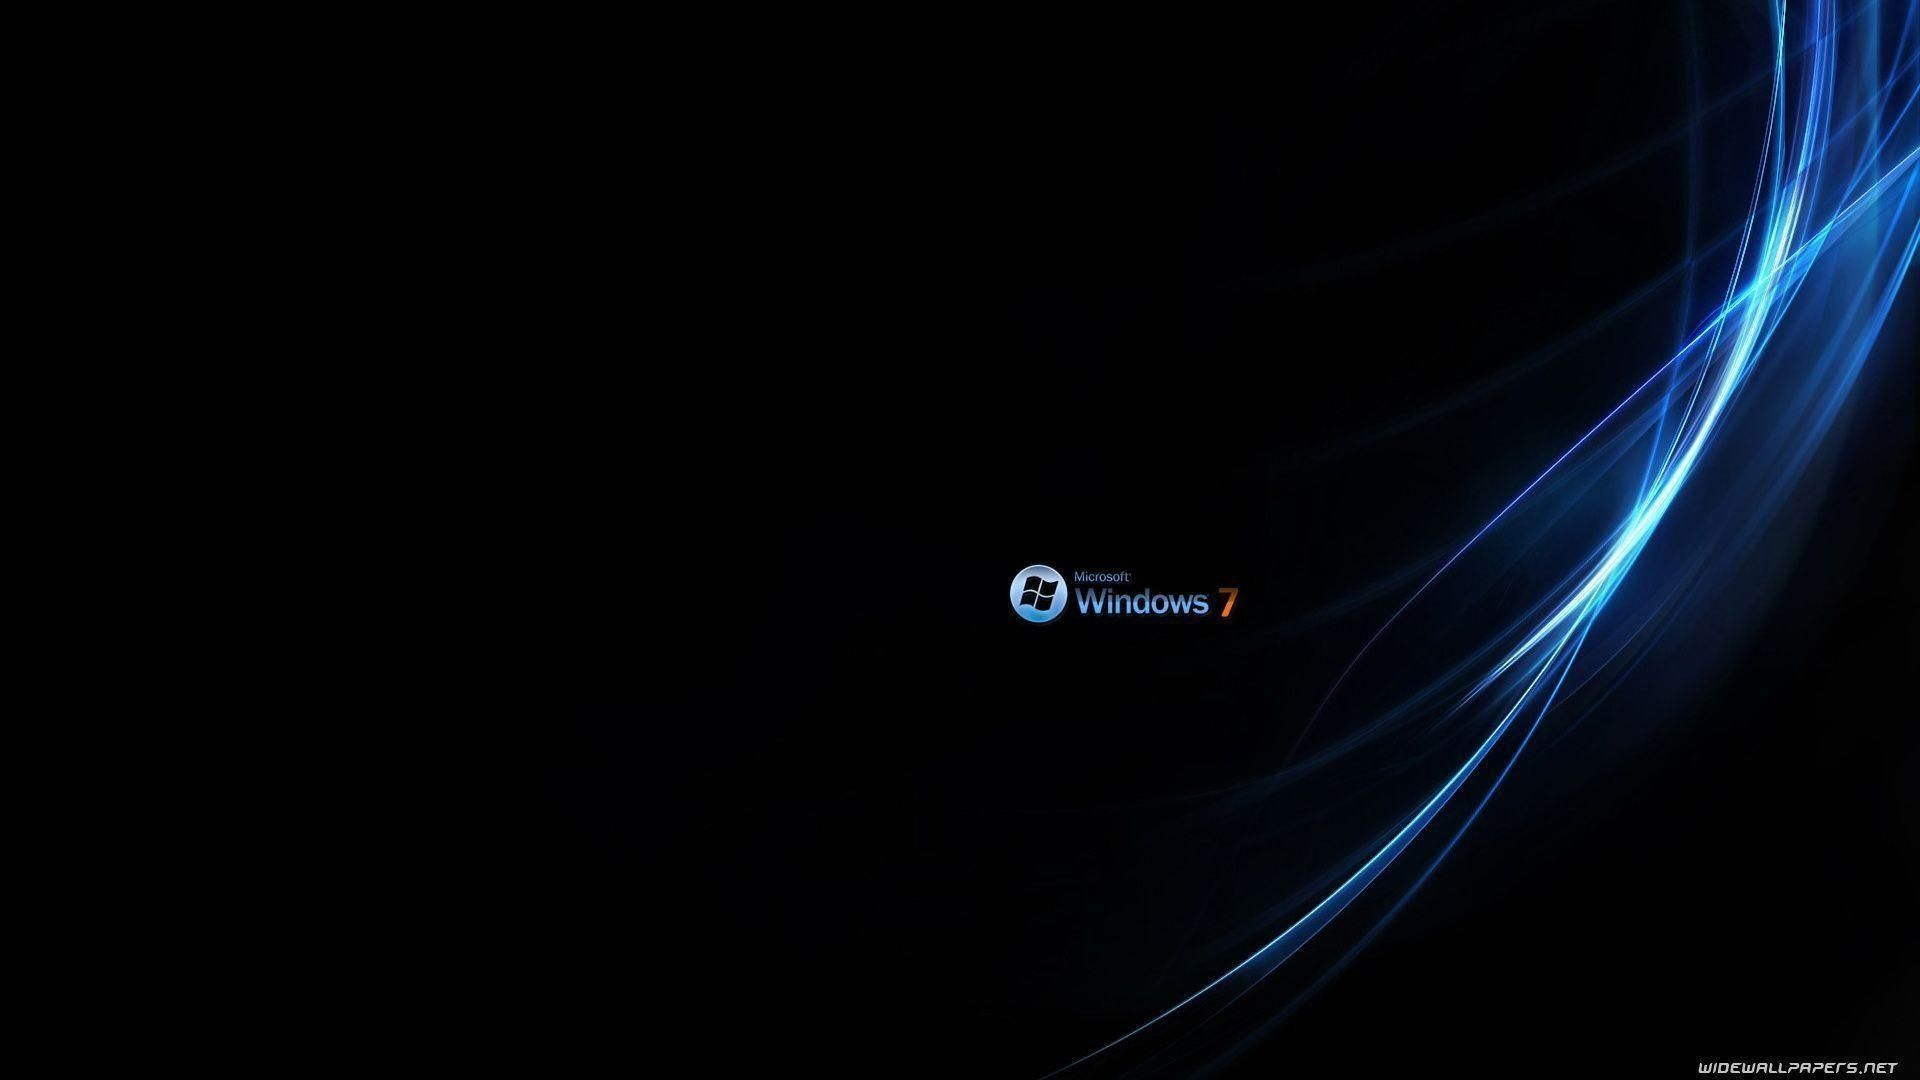 10 Top Windows 7 Wallpaper 1920x1080 Full Hd 1920 1080 For Pc